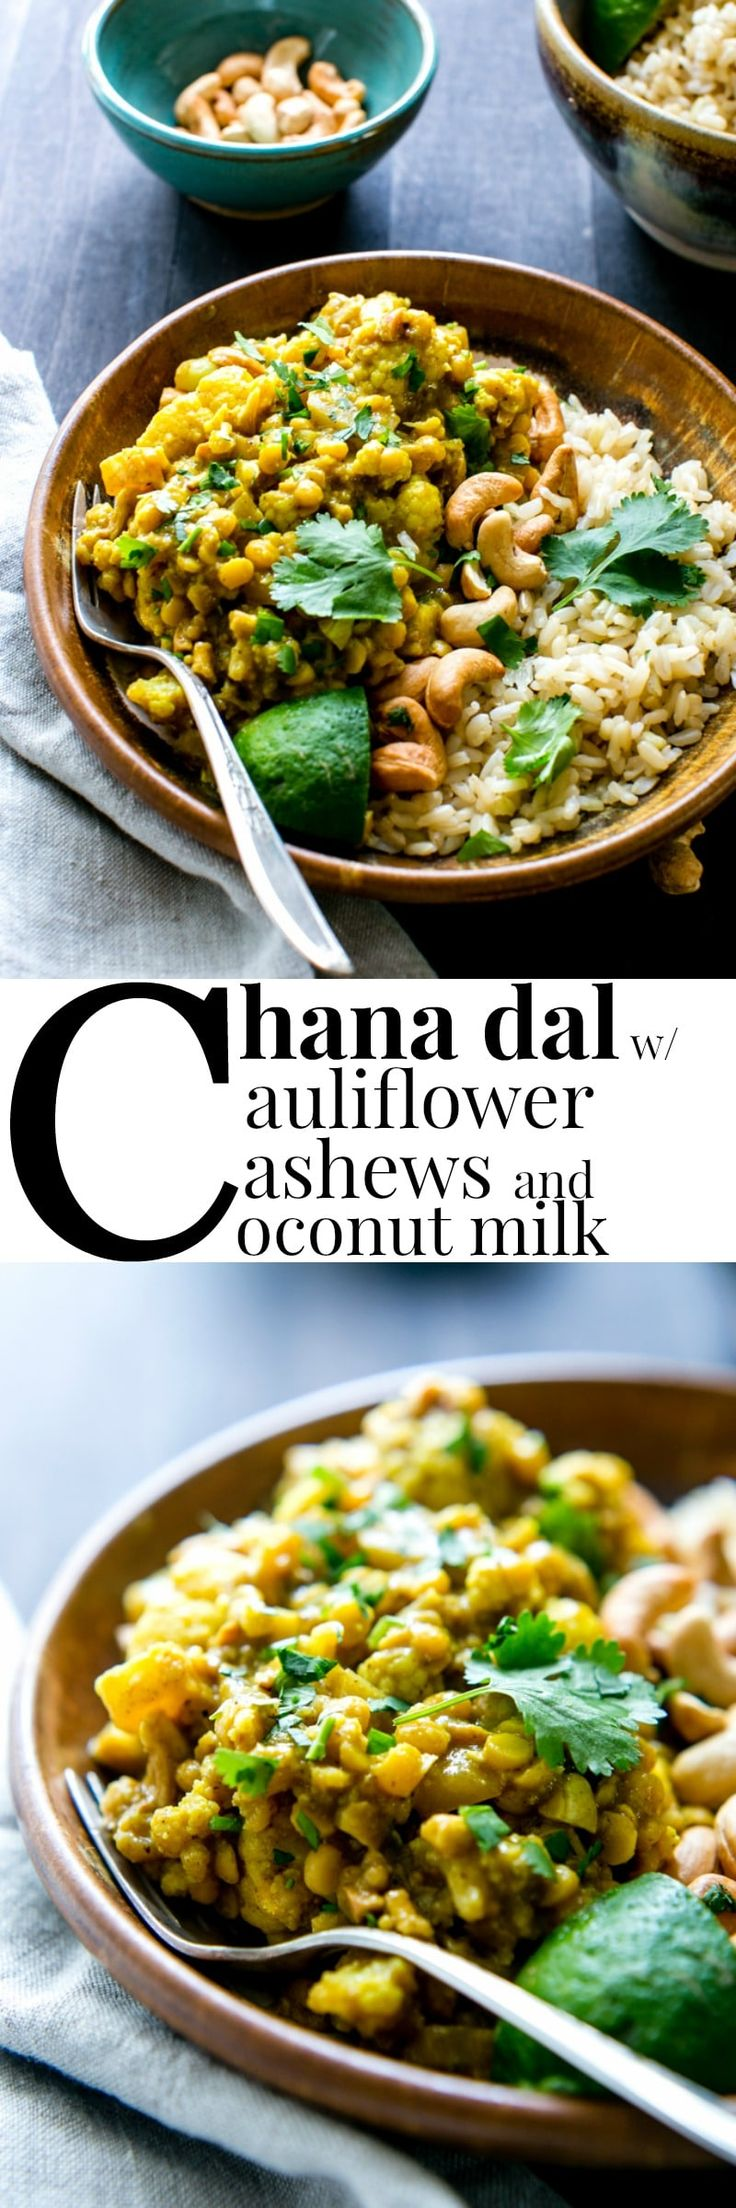 (Use 1/4 cup cashews; serve with quinoa) Fabulous flavors here: turmeric, cumin, cardamom, mustard seed, garlic and ginger make this a flavor-rich and nourishing meal for 4.